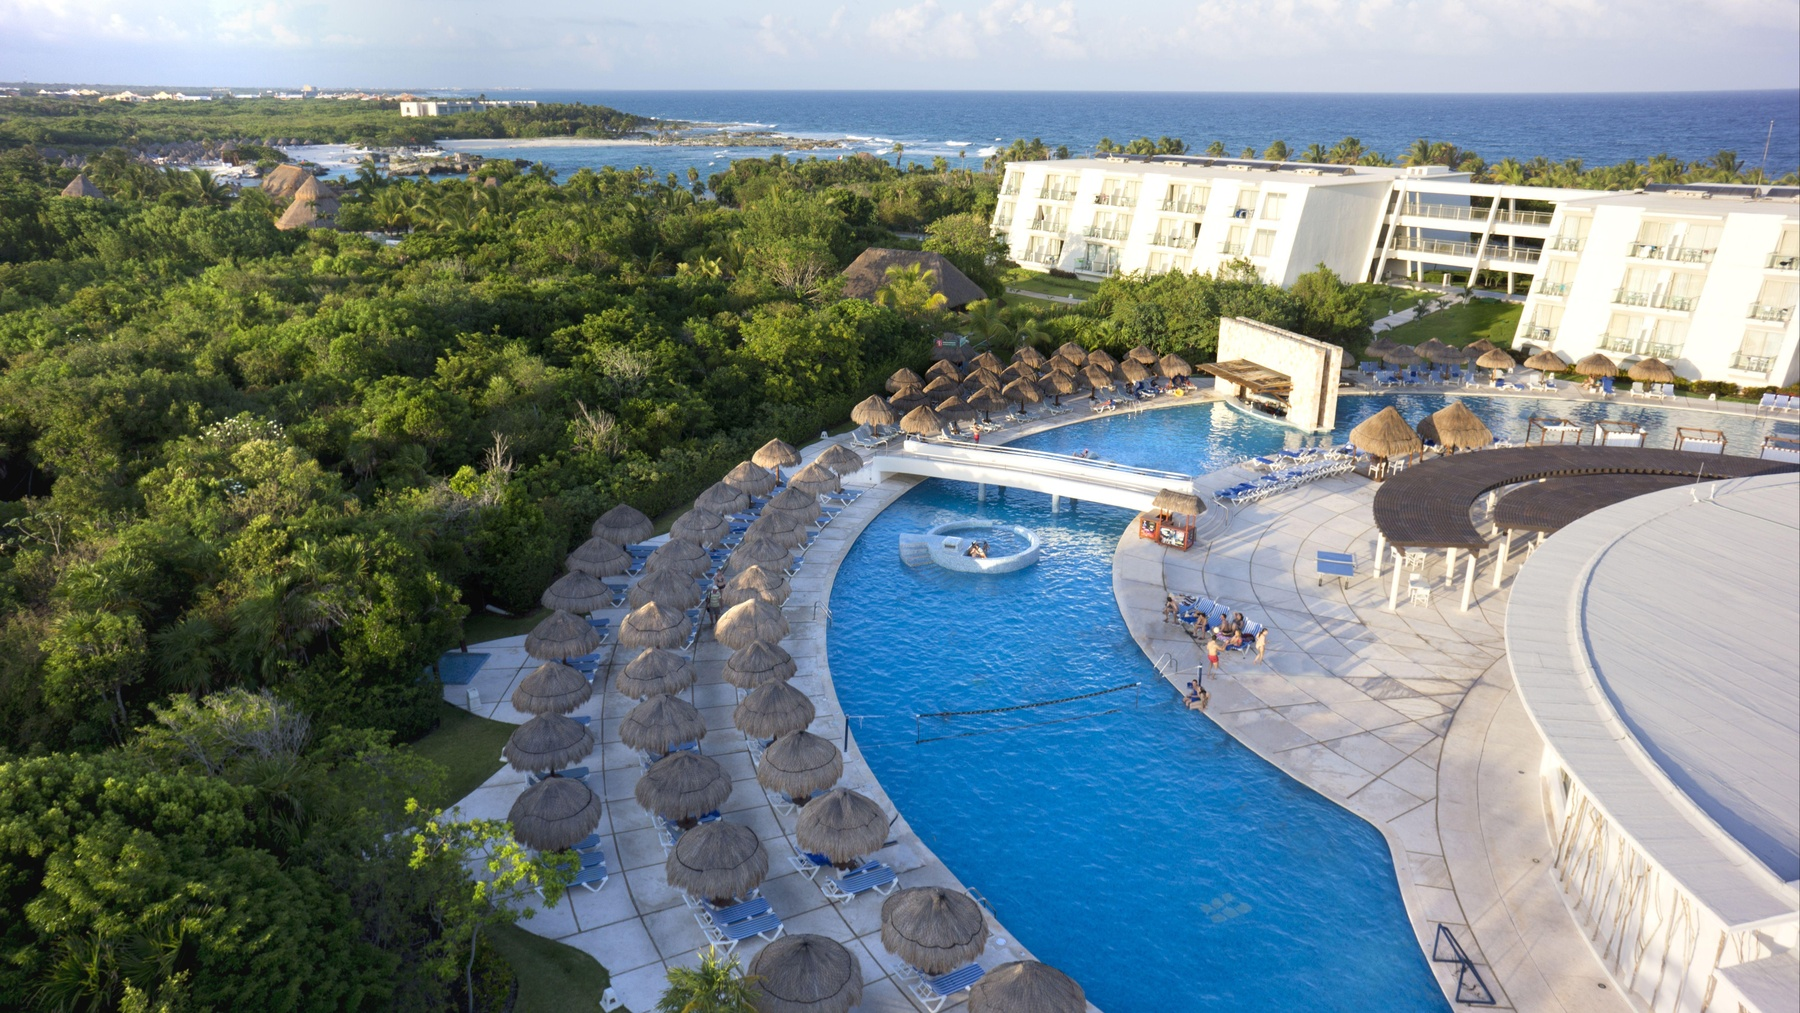 cancun dating sites Singles resorts in cancun lowest prices for: are these your travel dates tripadvisor uses this information to find you the lowest prices for your stay.